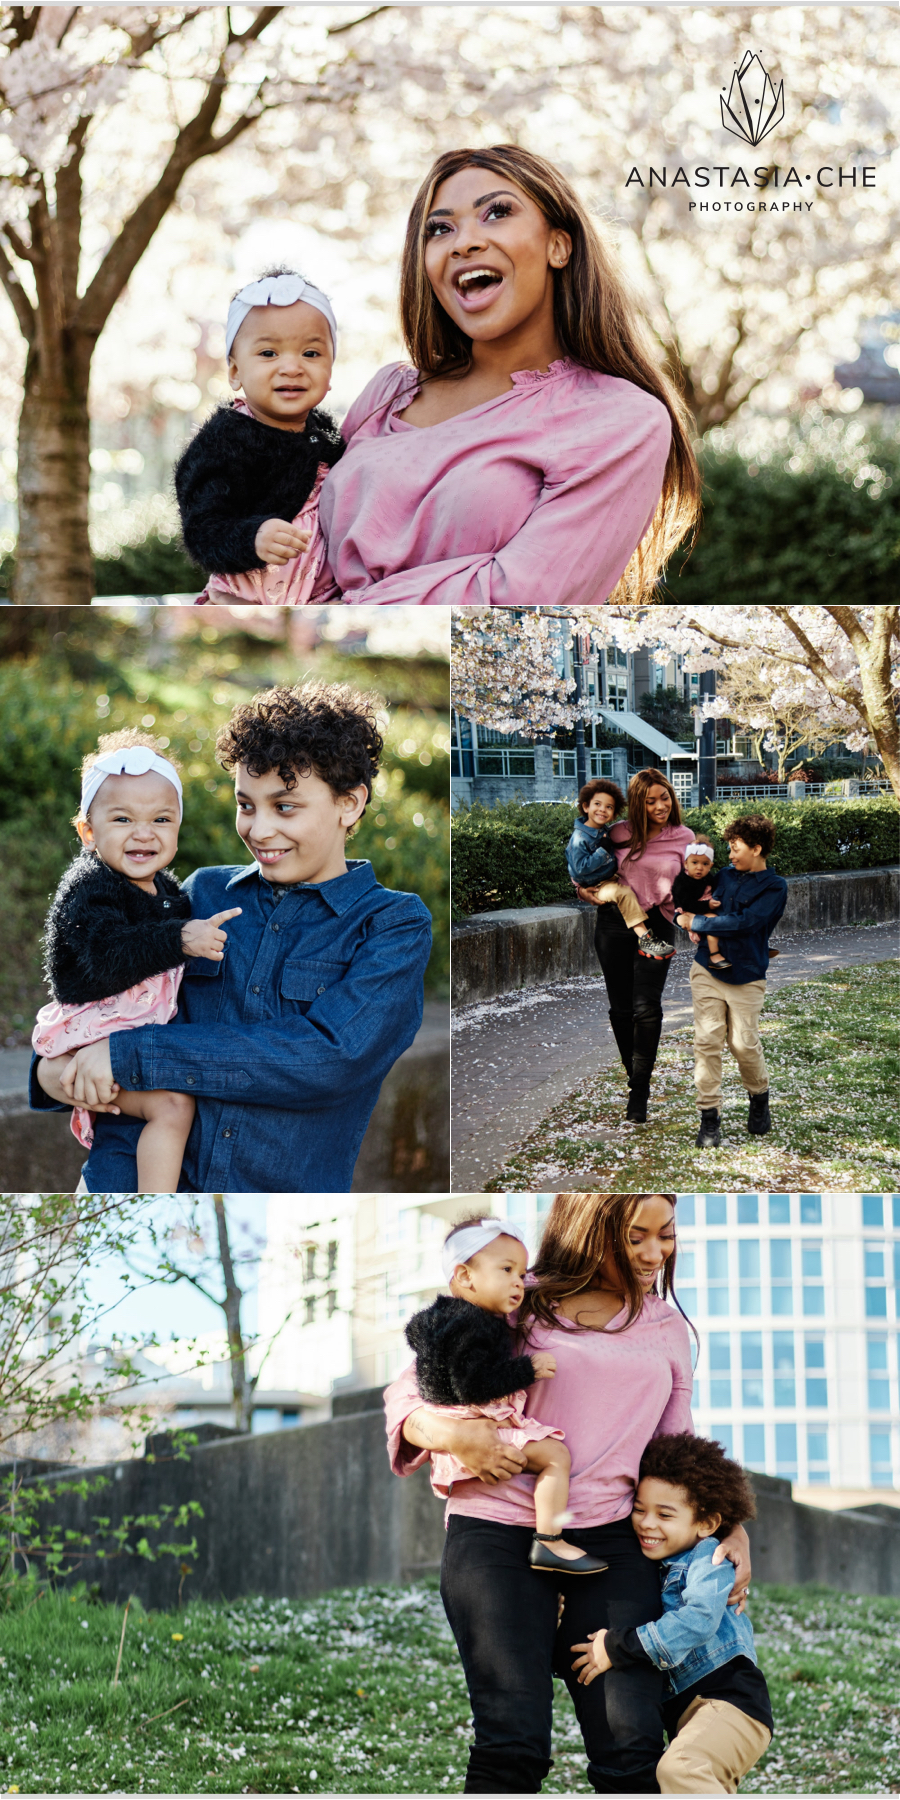 Family spring blossoms photo session in David Lam Park, Vancouver